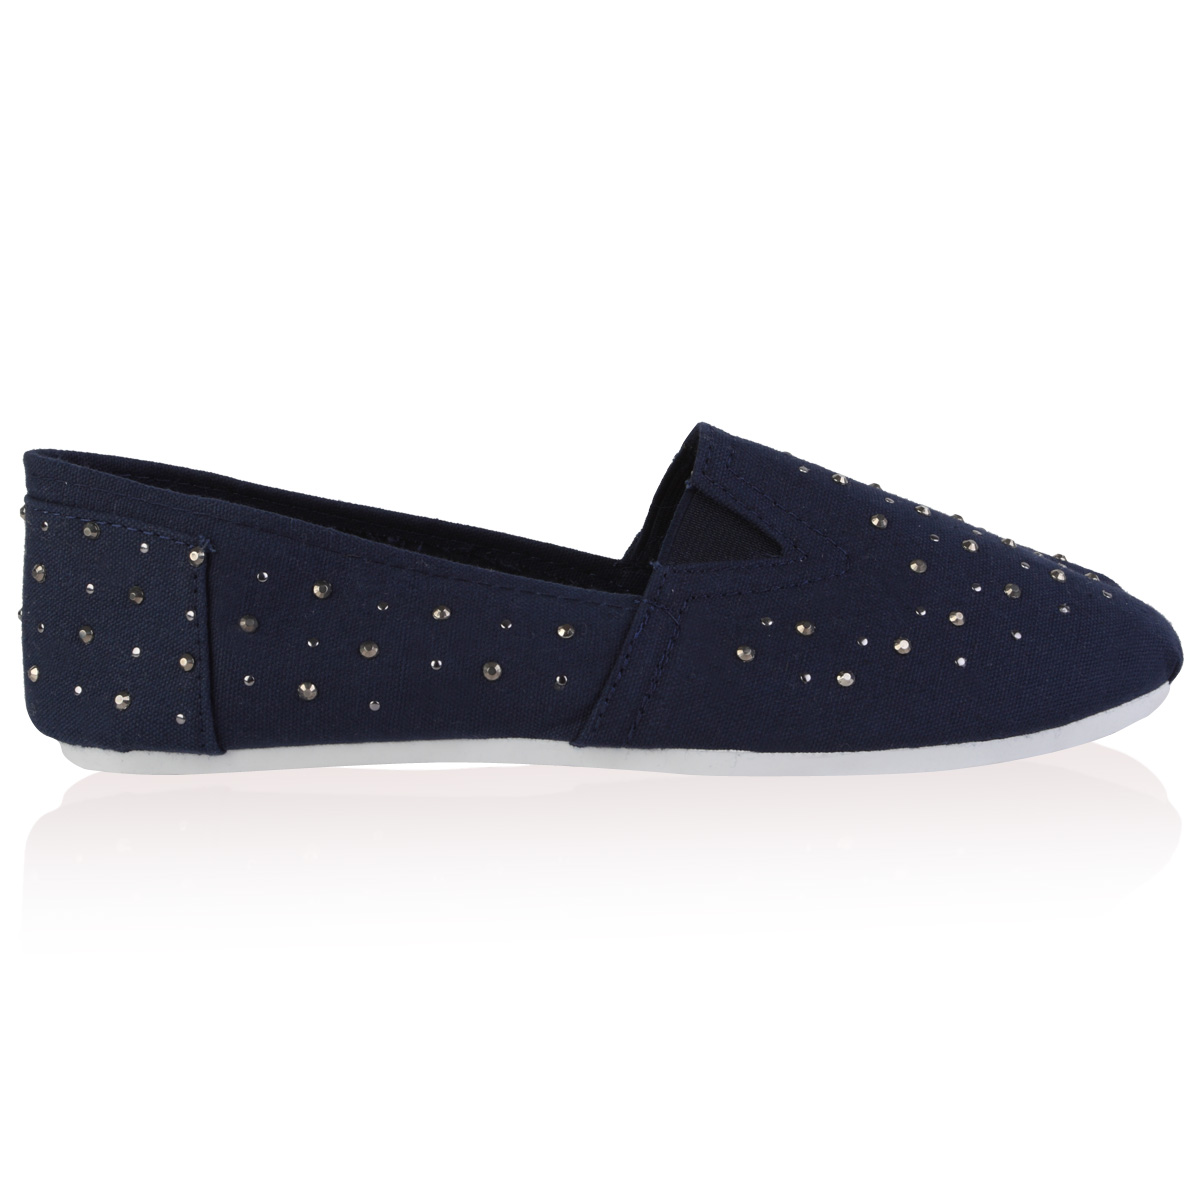 Put your feet into Women's Navy Blue Shoes, Men's Navy Blue Shoes and others at Macy's. Macy's Presents: The Edit - A curated mix of fashion and inspiration Check It Out Free Shipping with $75 purchase + Free Store Pickup.